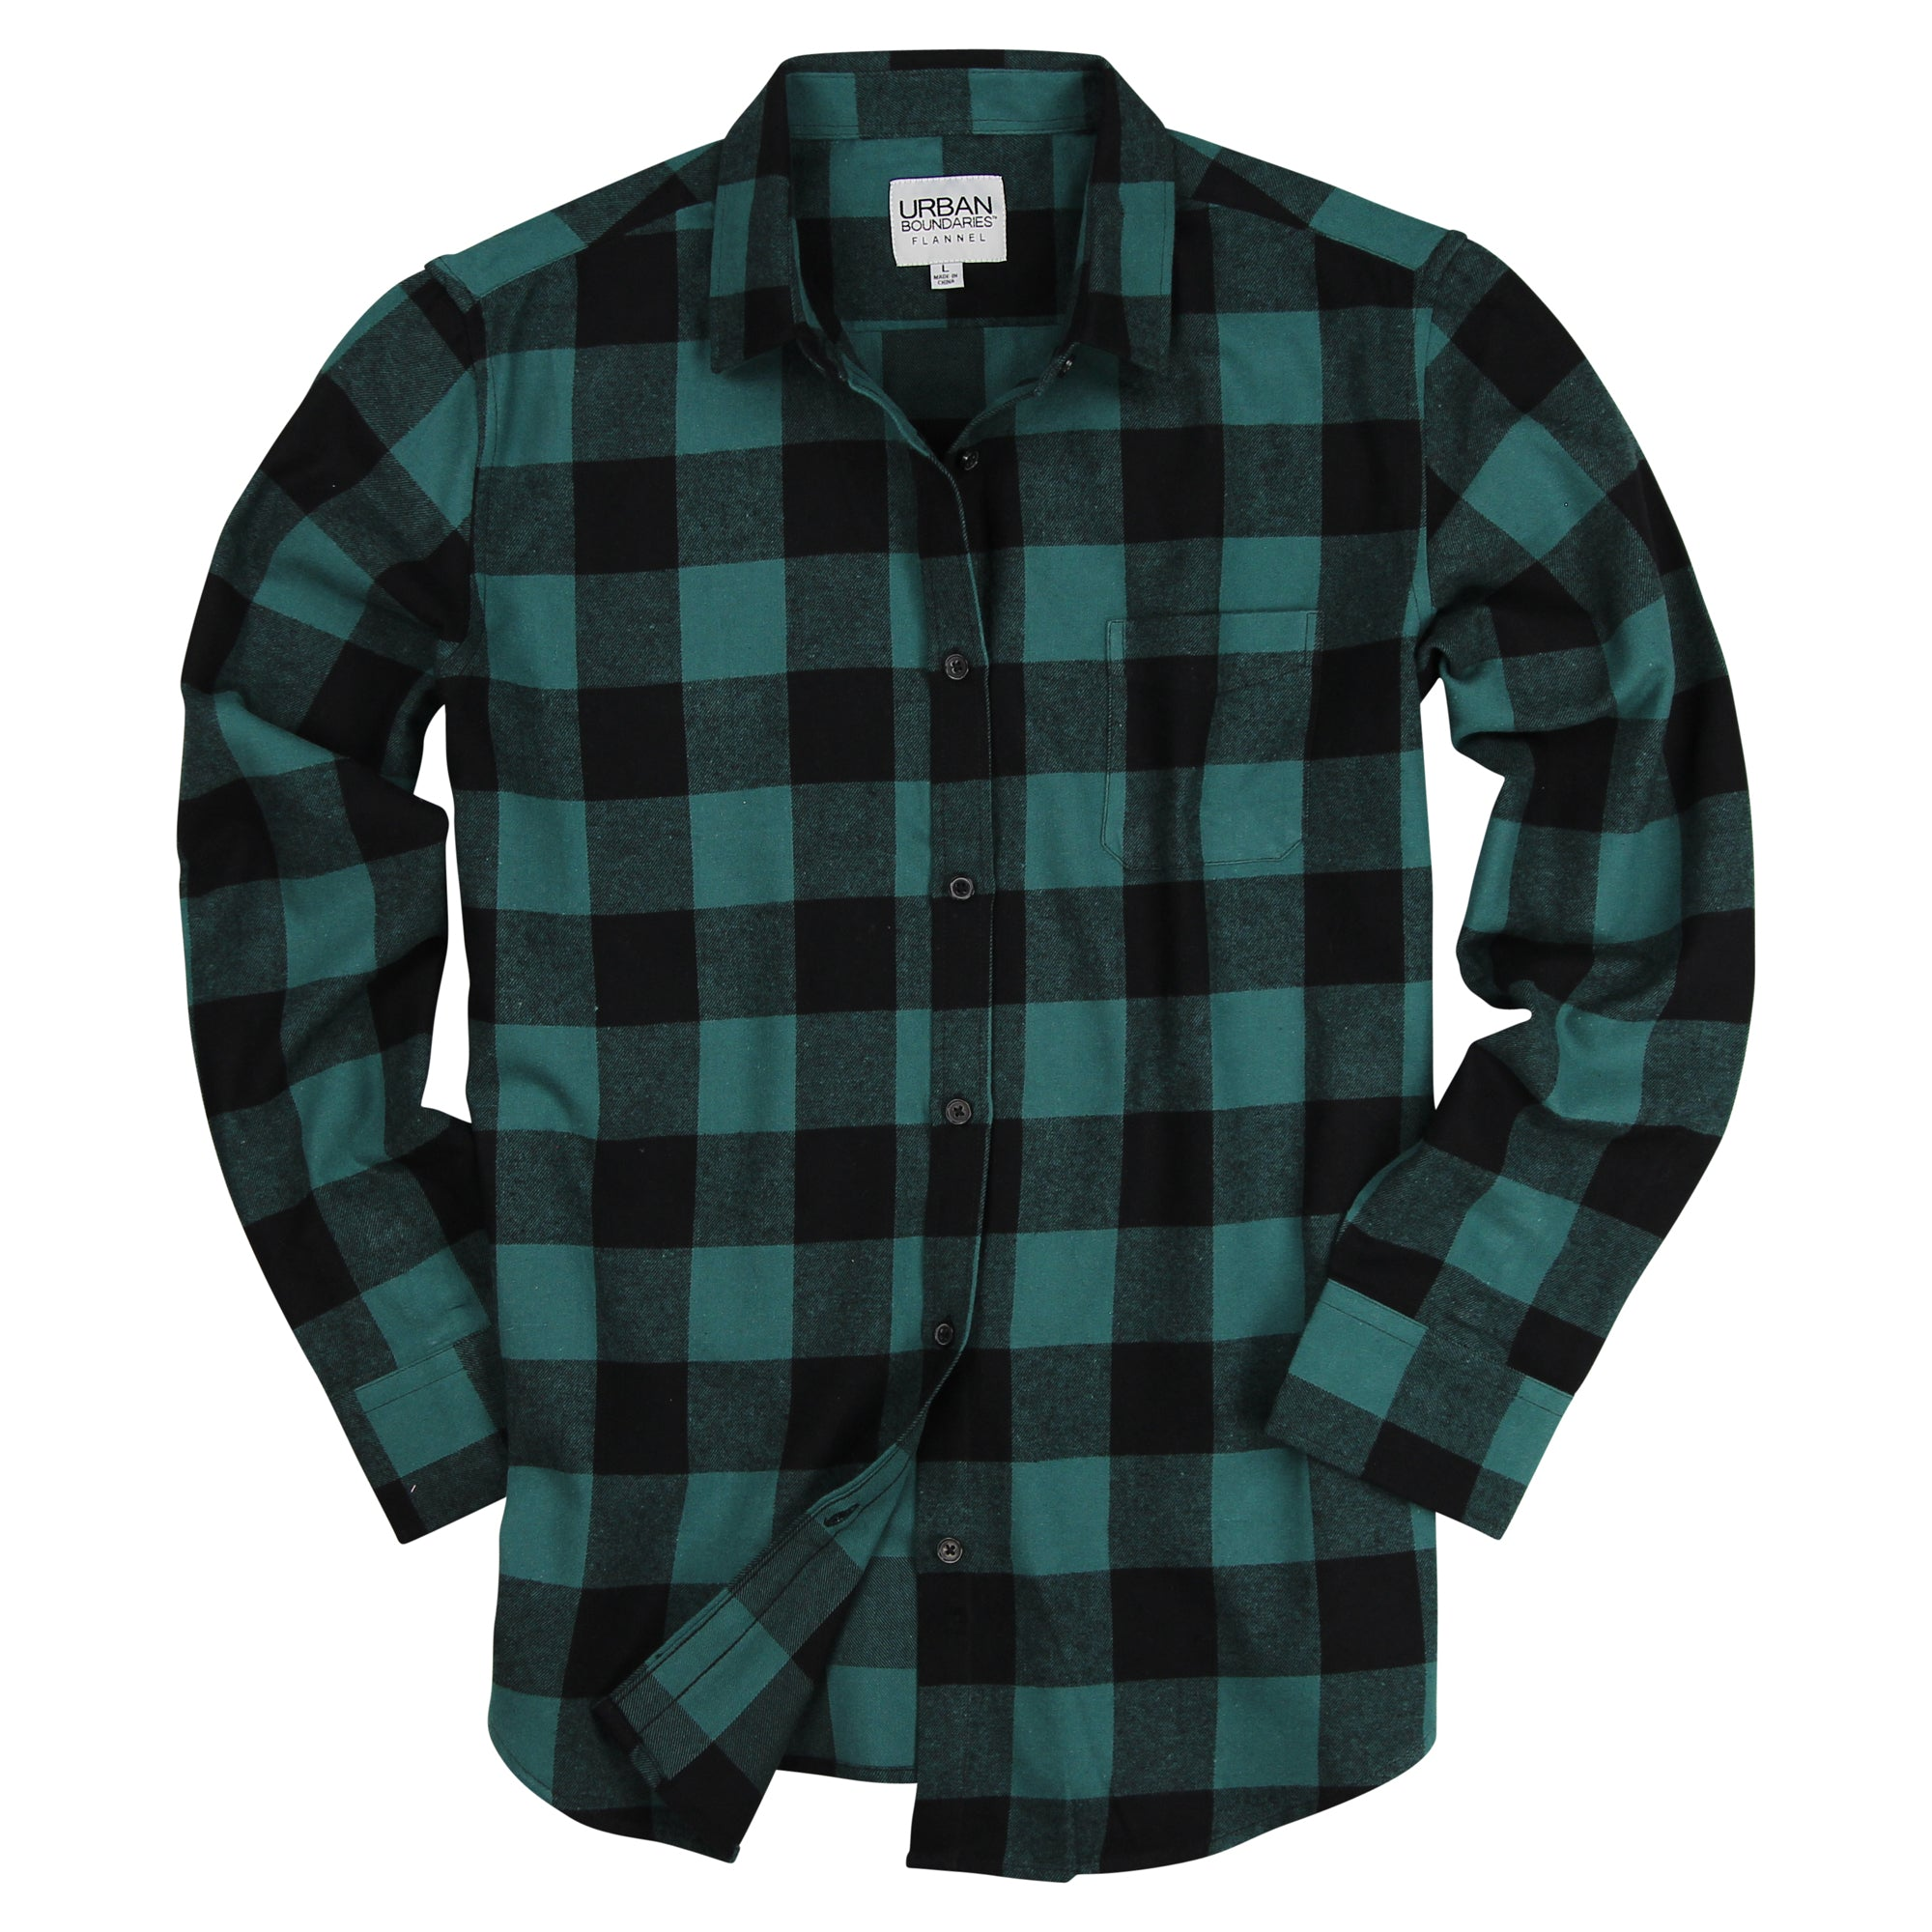 Women s Classic Buffalo Plaid Flannel Shirt Green   Black – Urban Boundaries 8bb9699033e